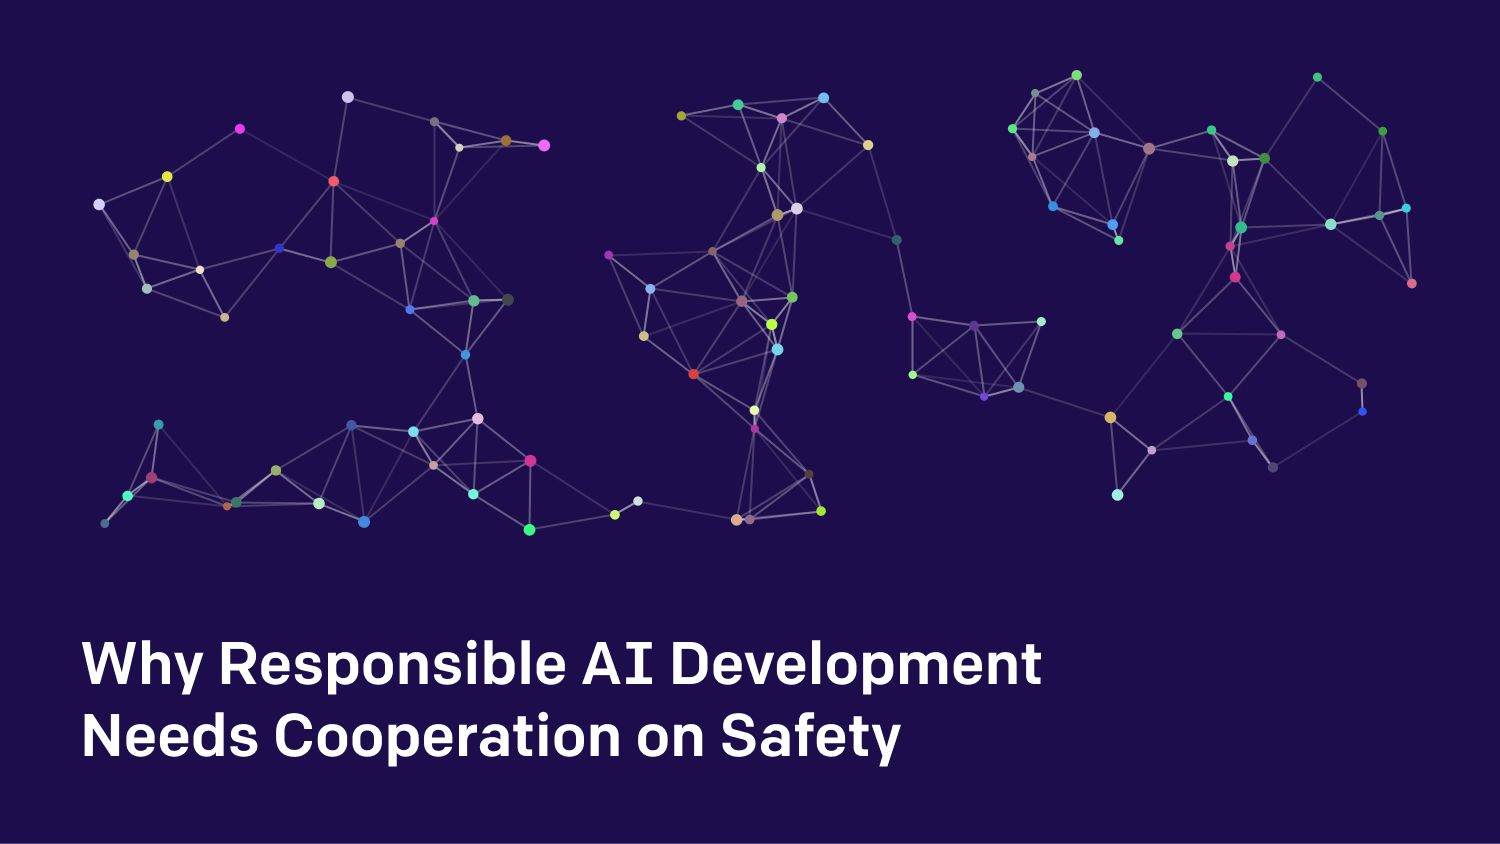 Why Responsible AI Development Needs Cooperation on Safety